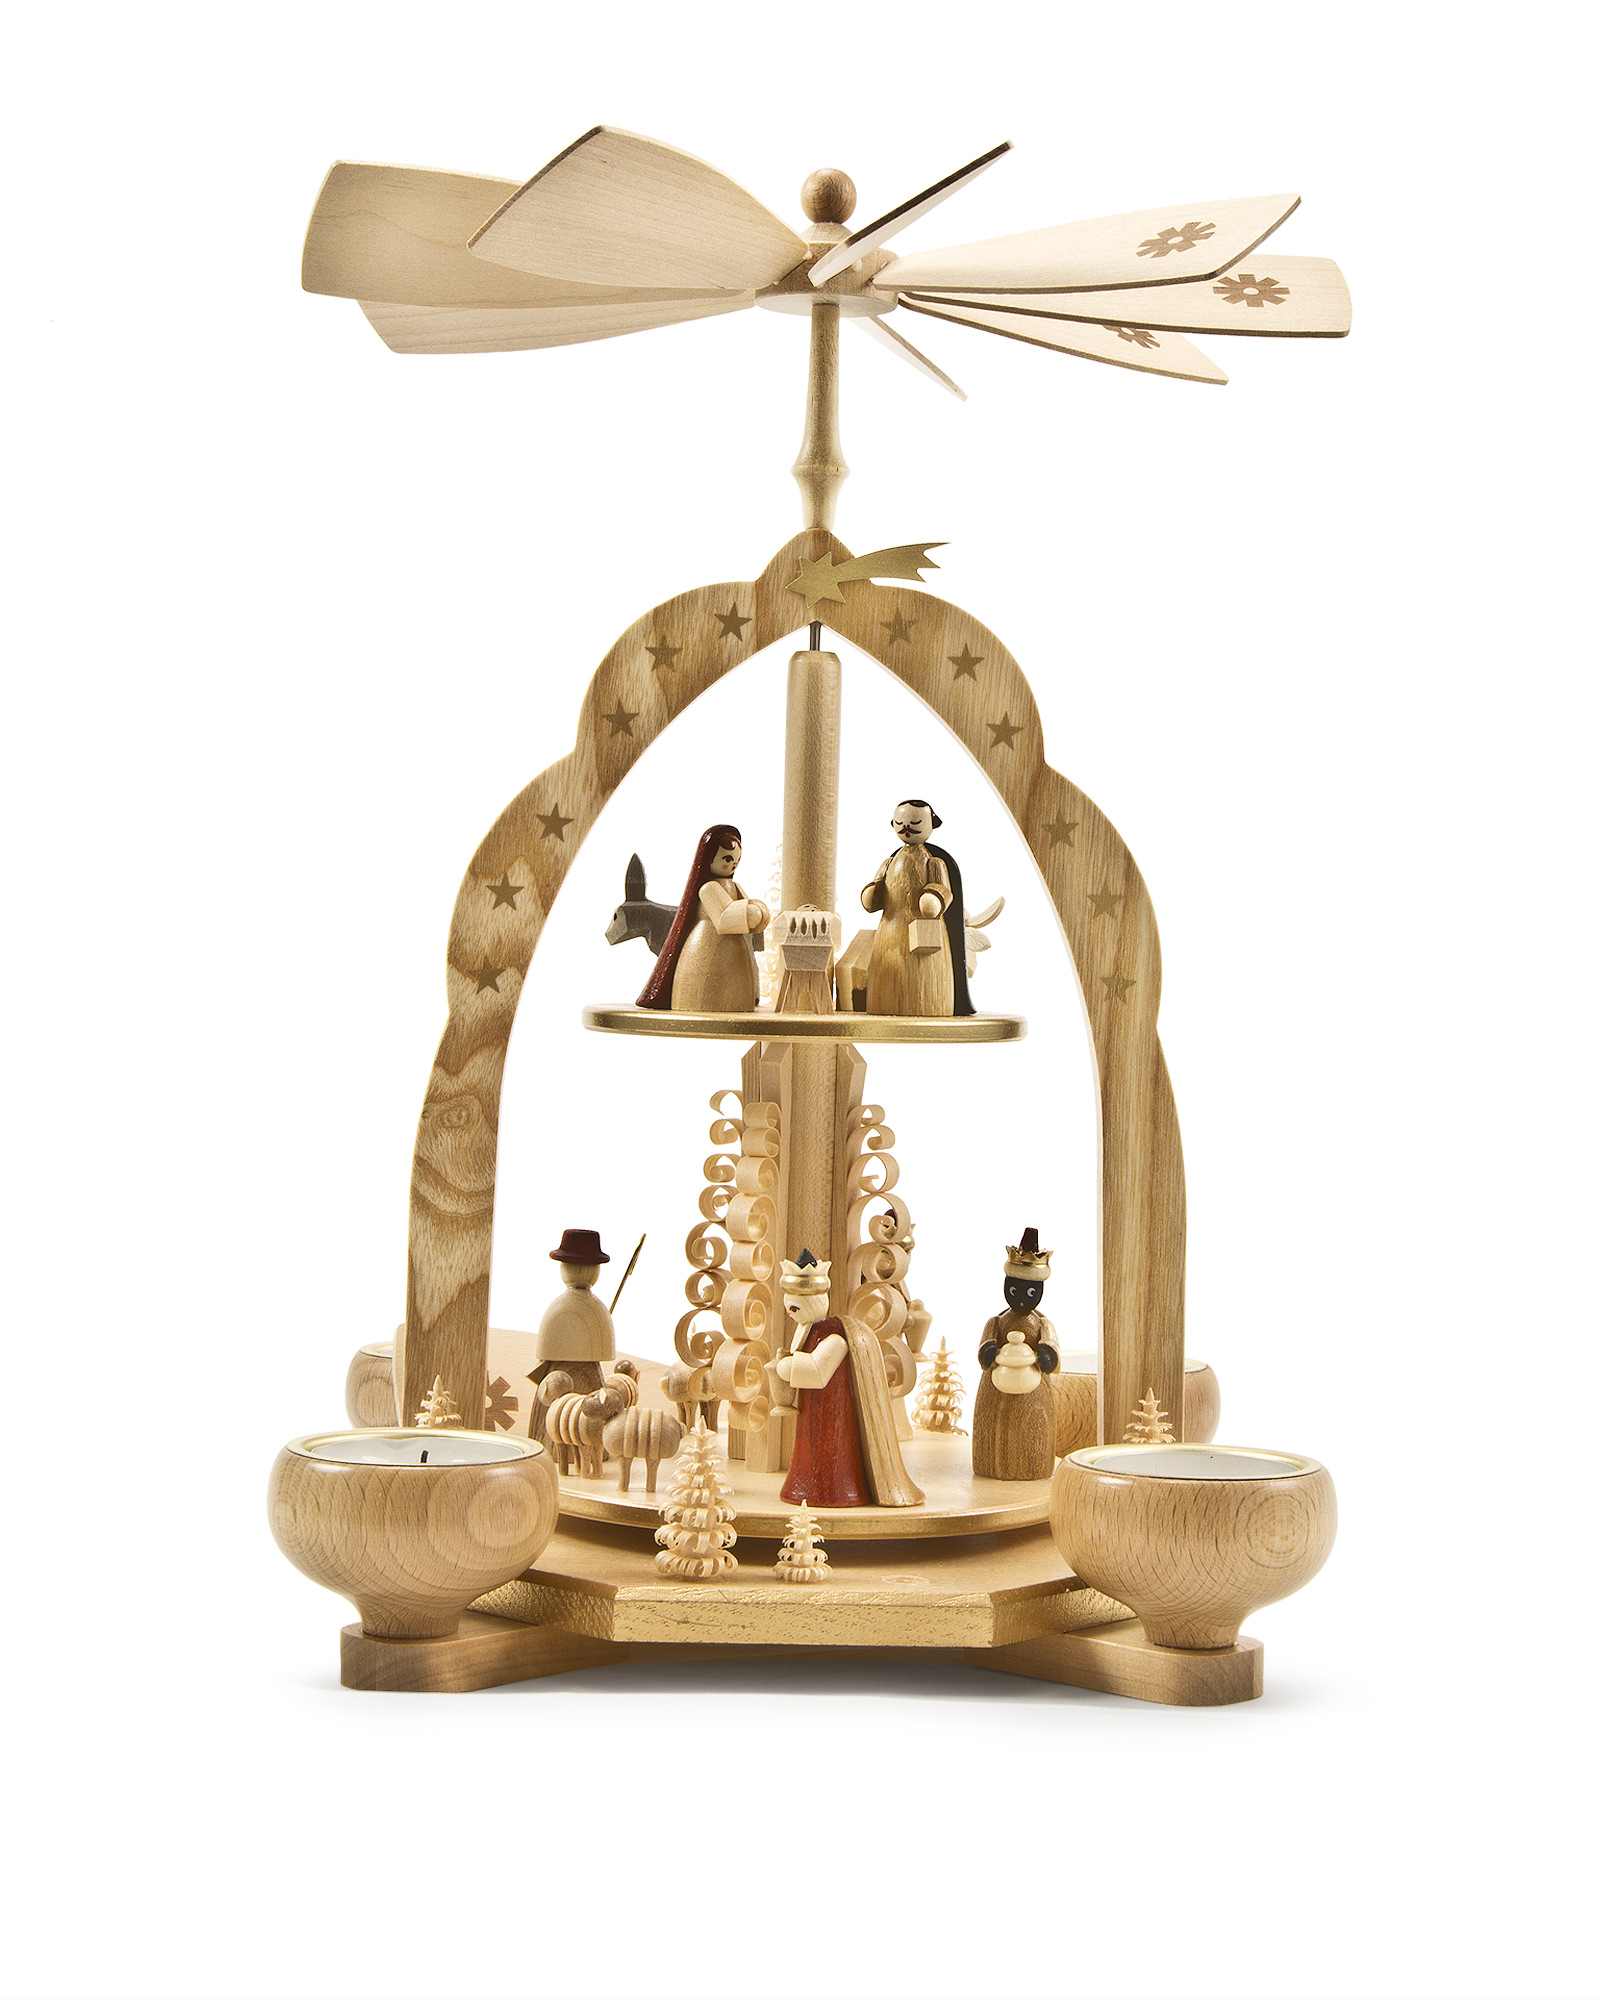 Balsam Hill Handcrafted Items - German Pyramid Nativity